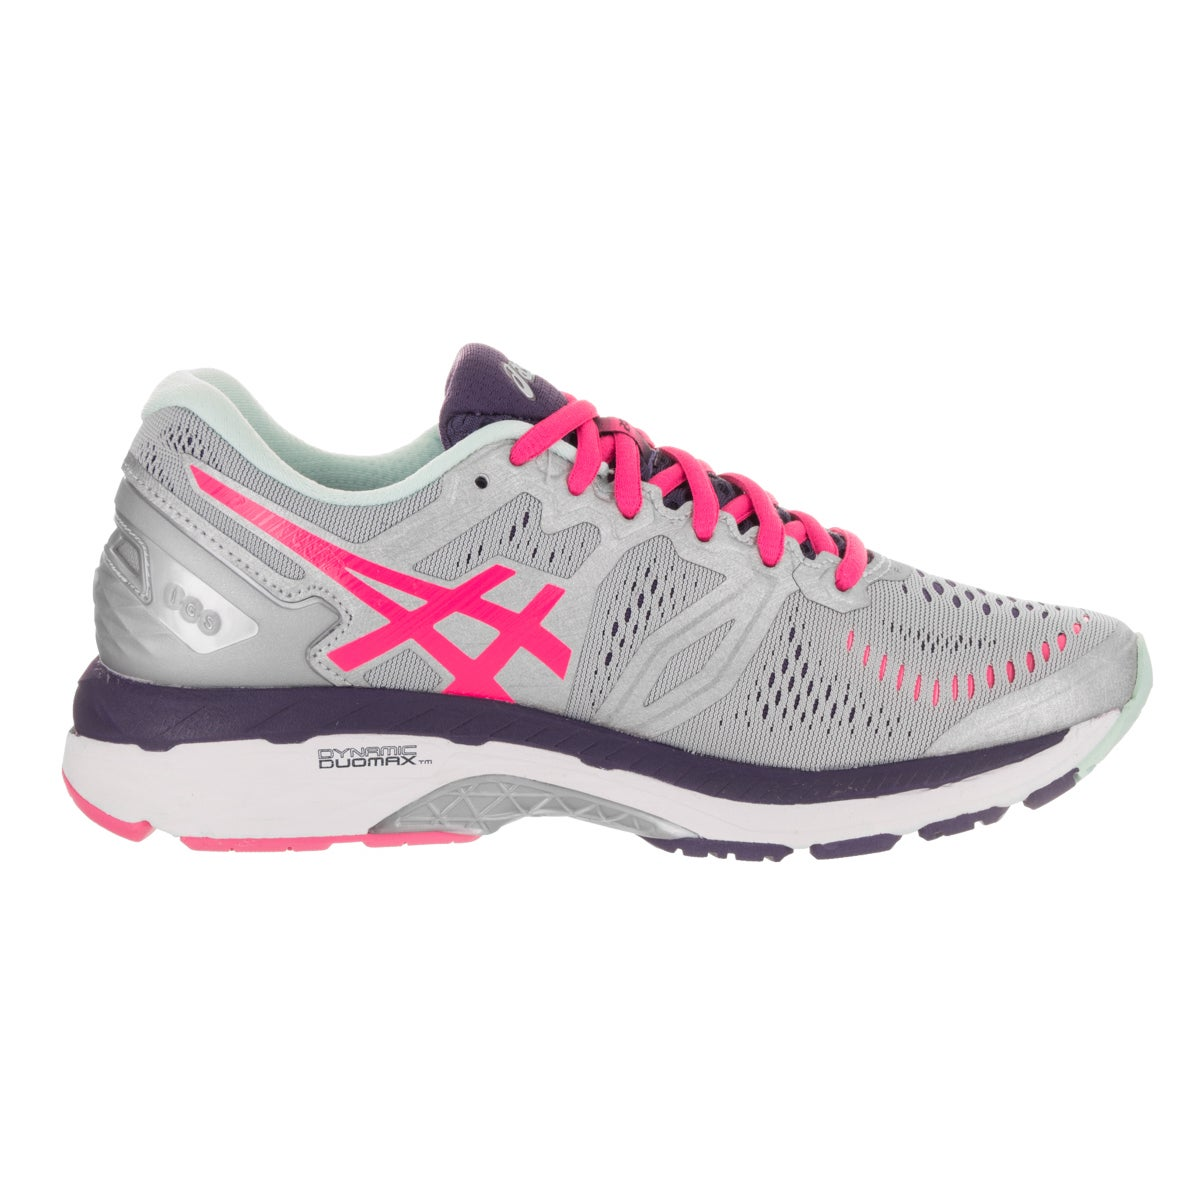 9028227e0491 Shop Asics Women s Gel-Kayano 23 Silver Running Shoes - Free Shipping Today  - Overstock - 15924488